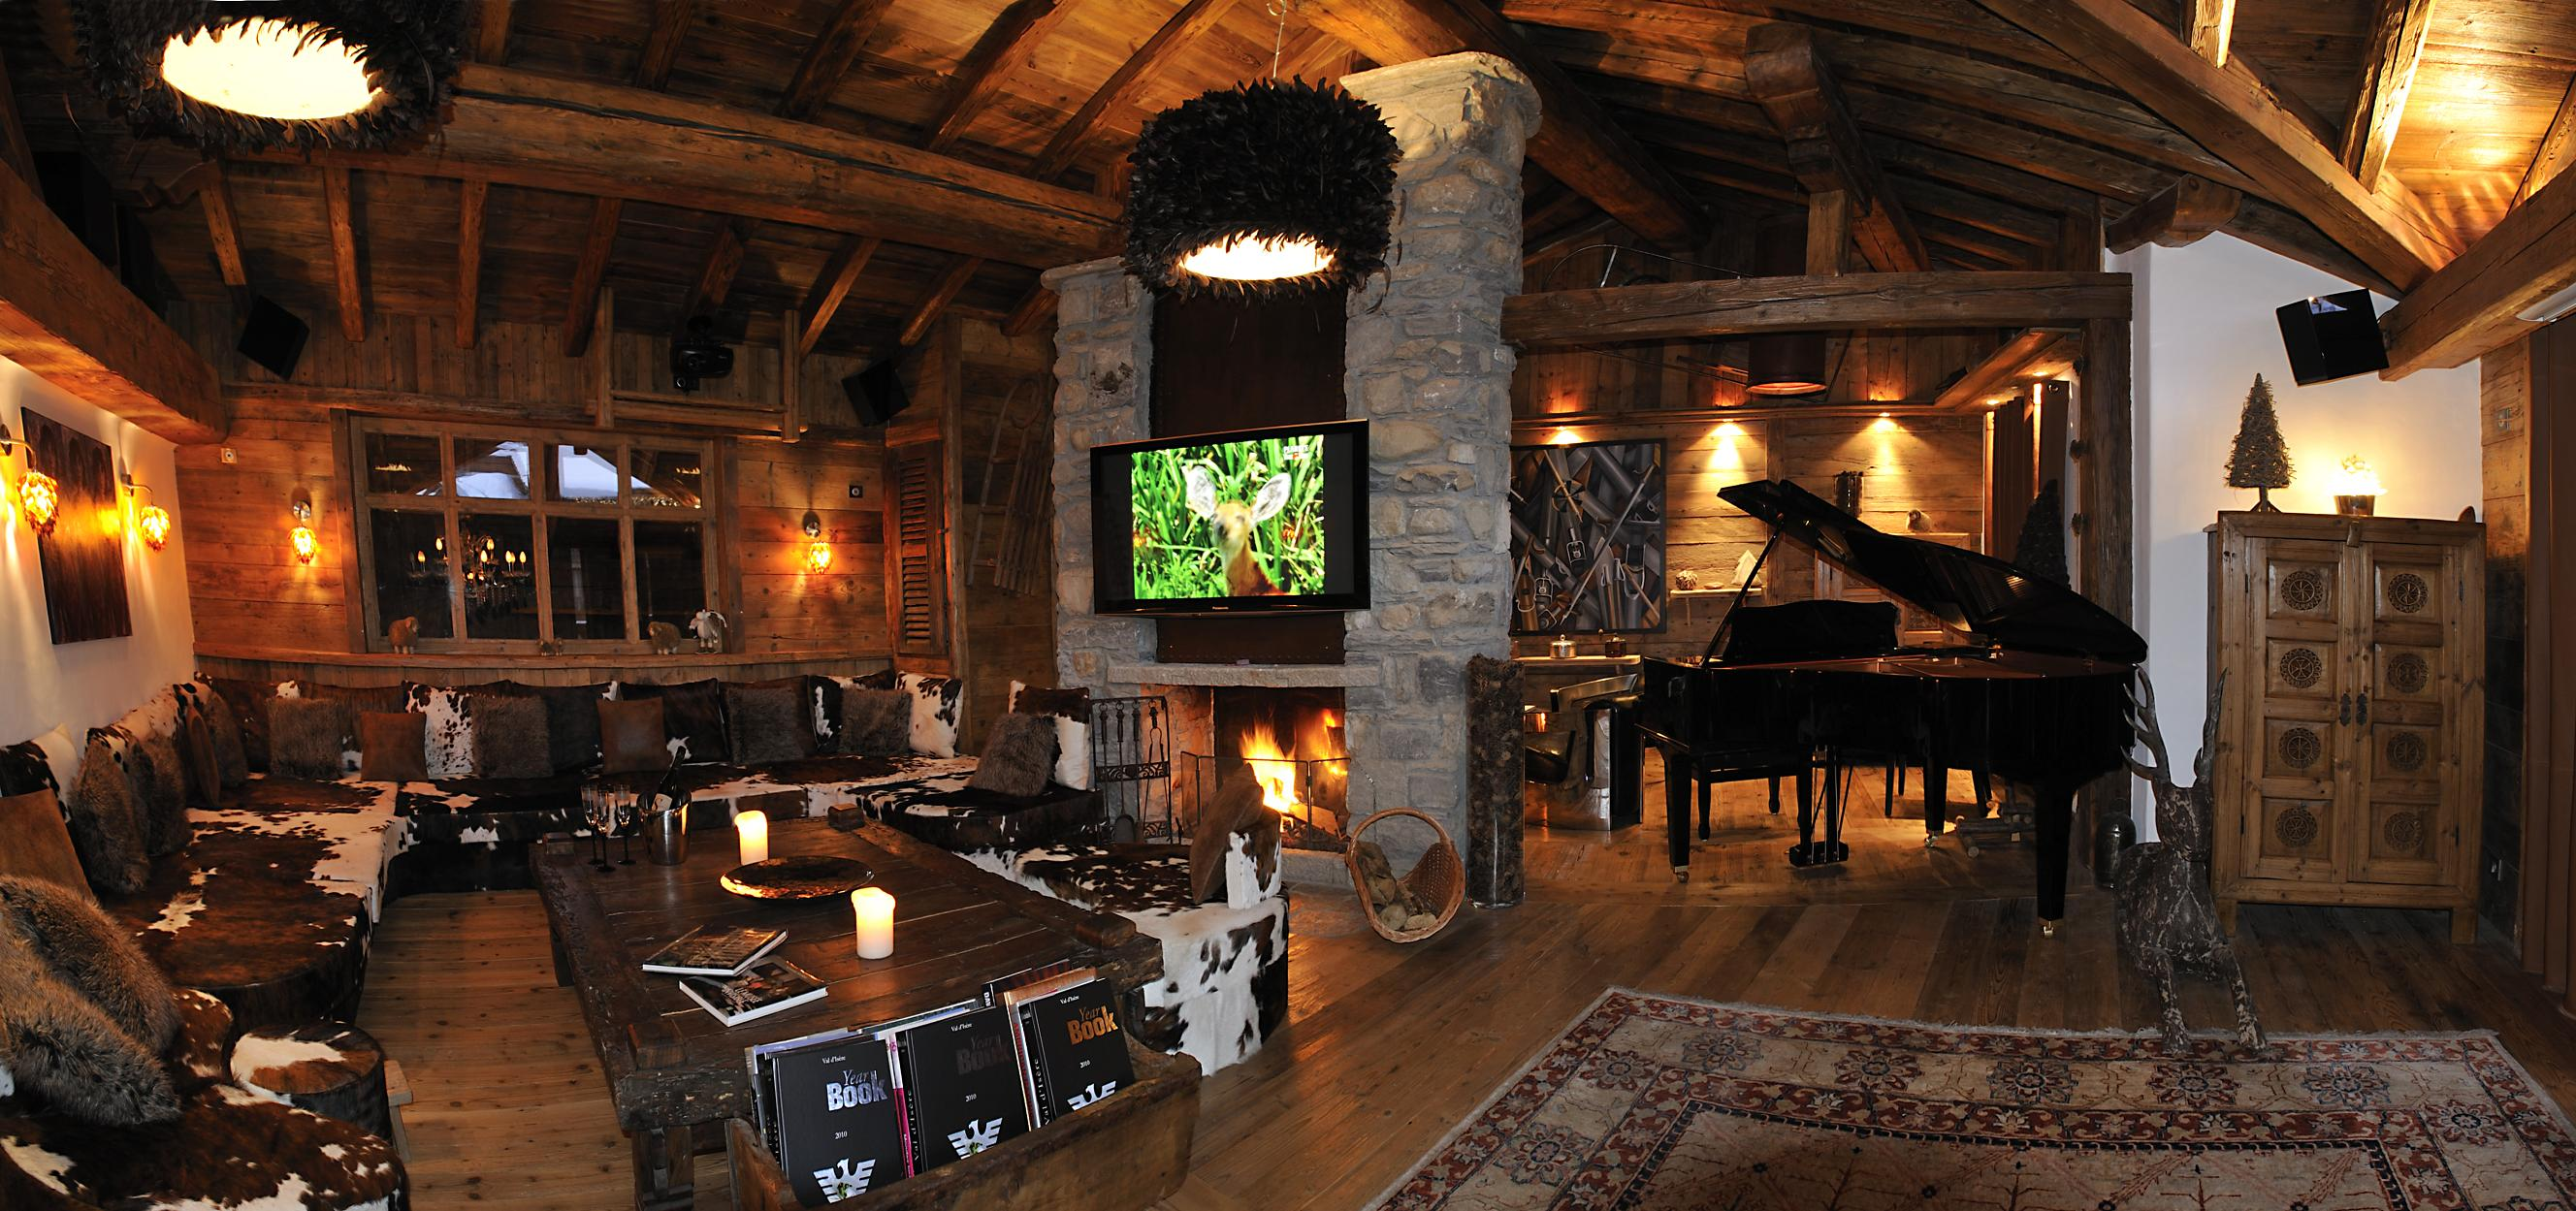 Consensio\'s new Chalet Marco Polo: possibly the most luxurious ...